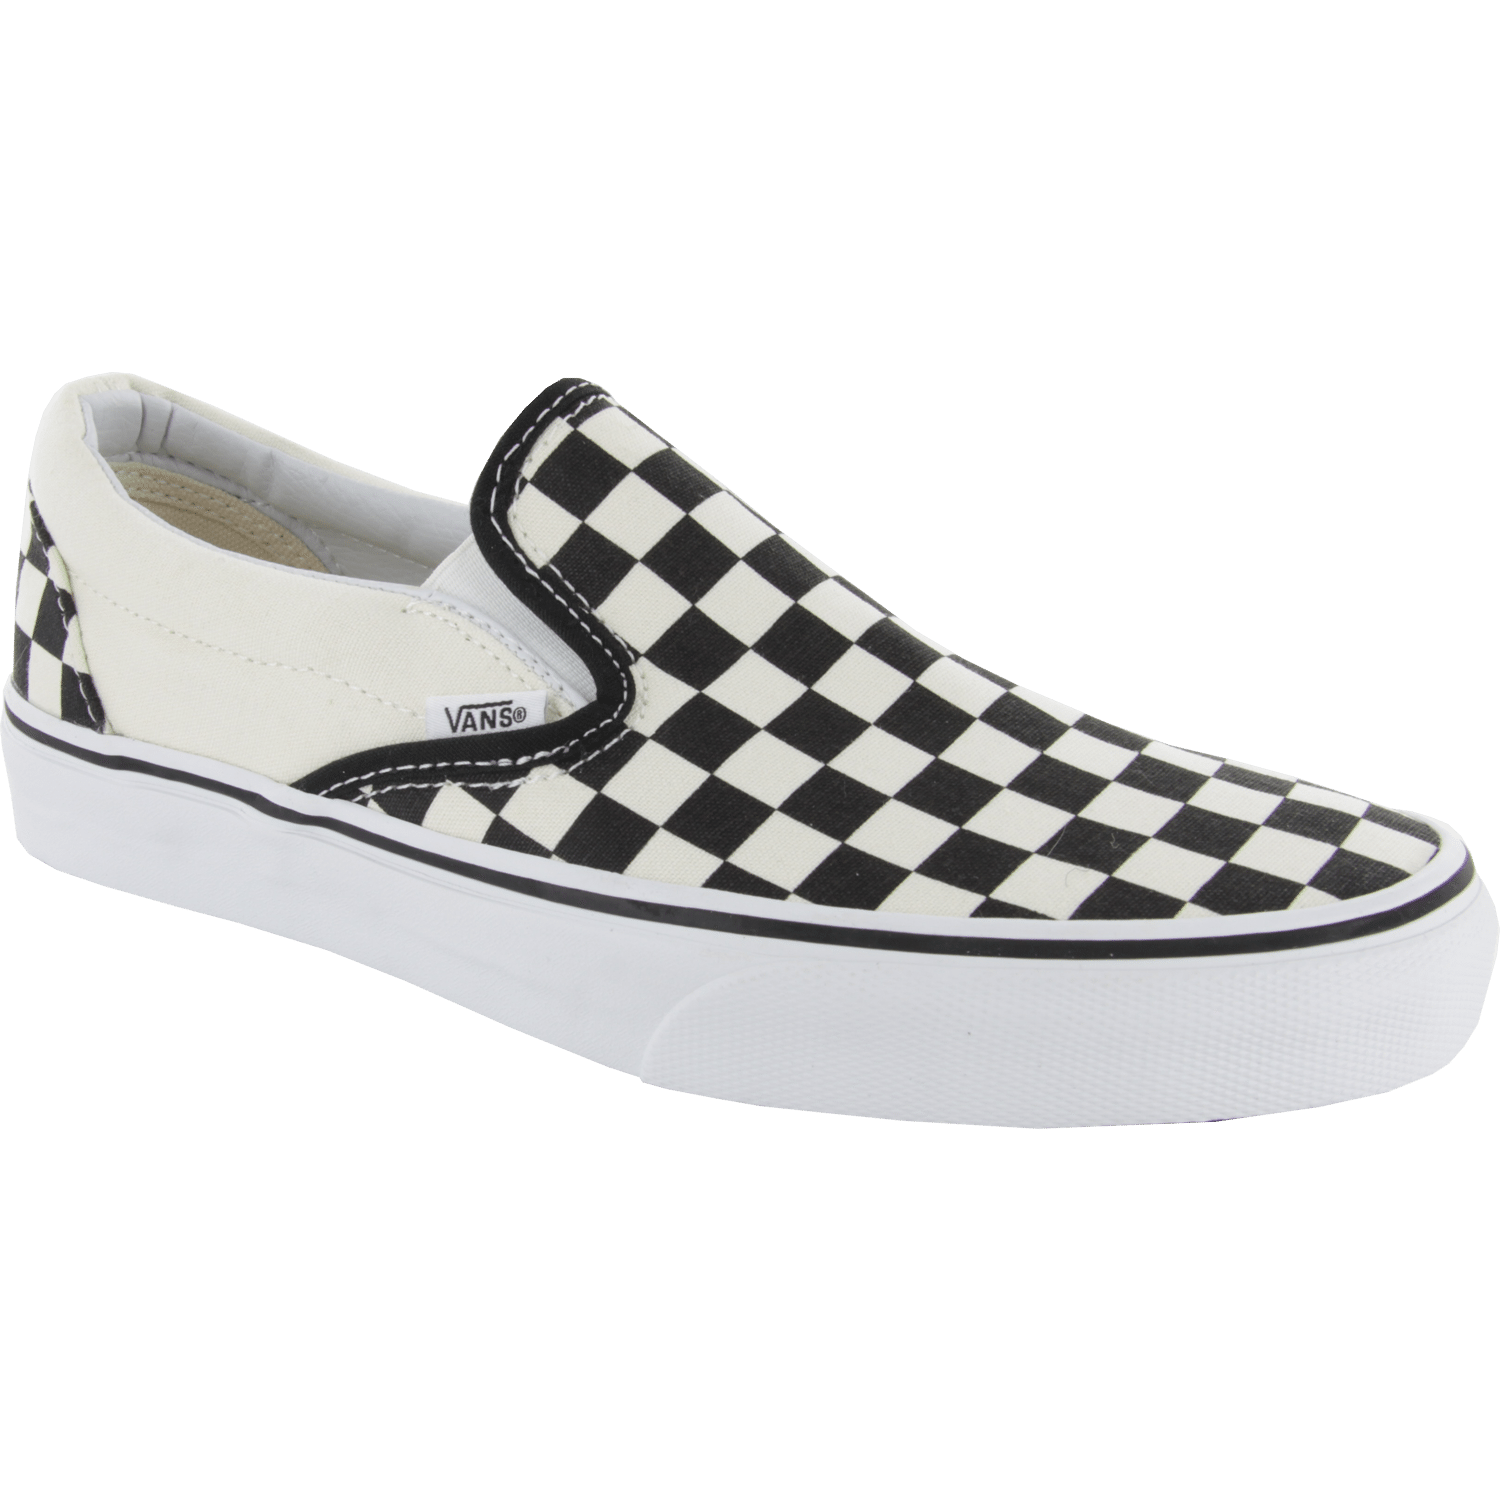 vans classic checkerboard shoes